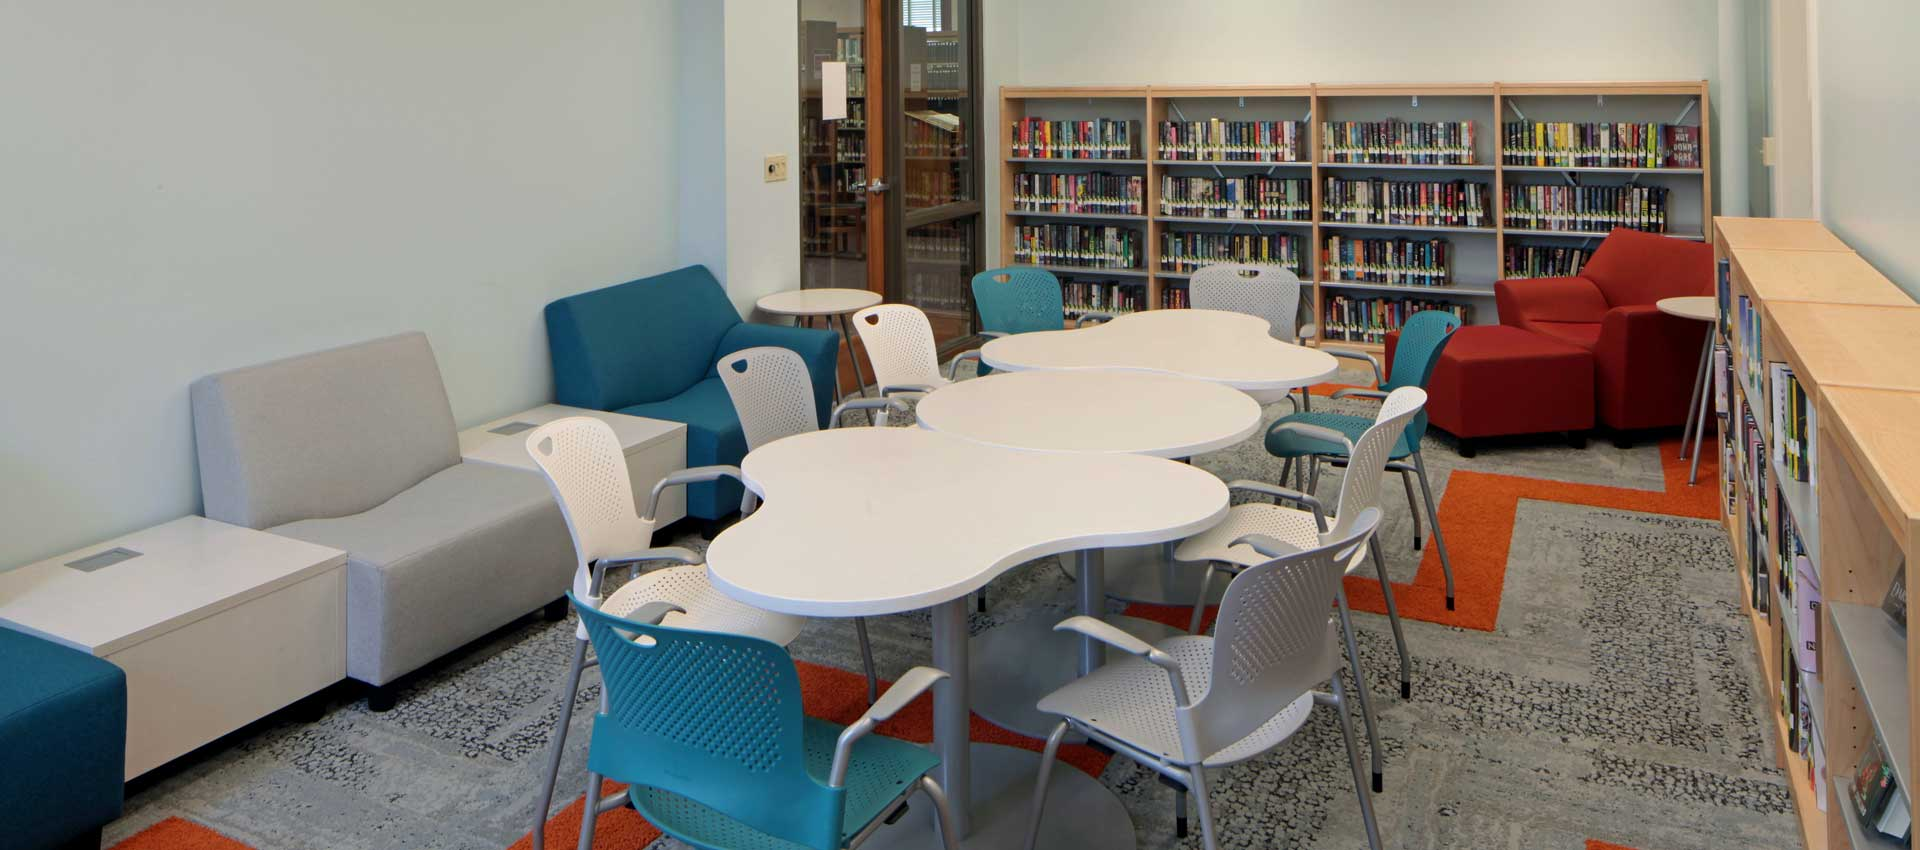 teen room in library with couches, table, chairs